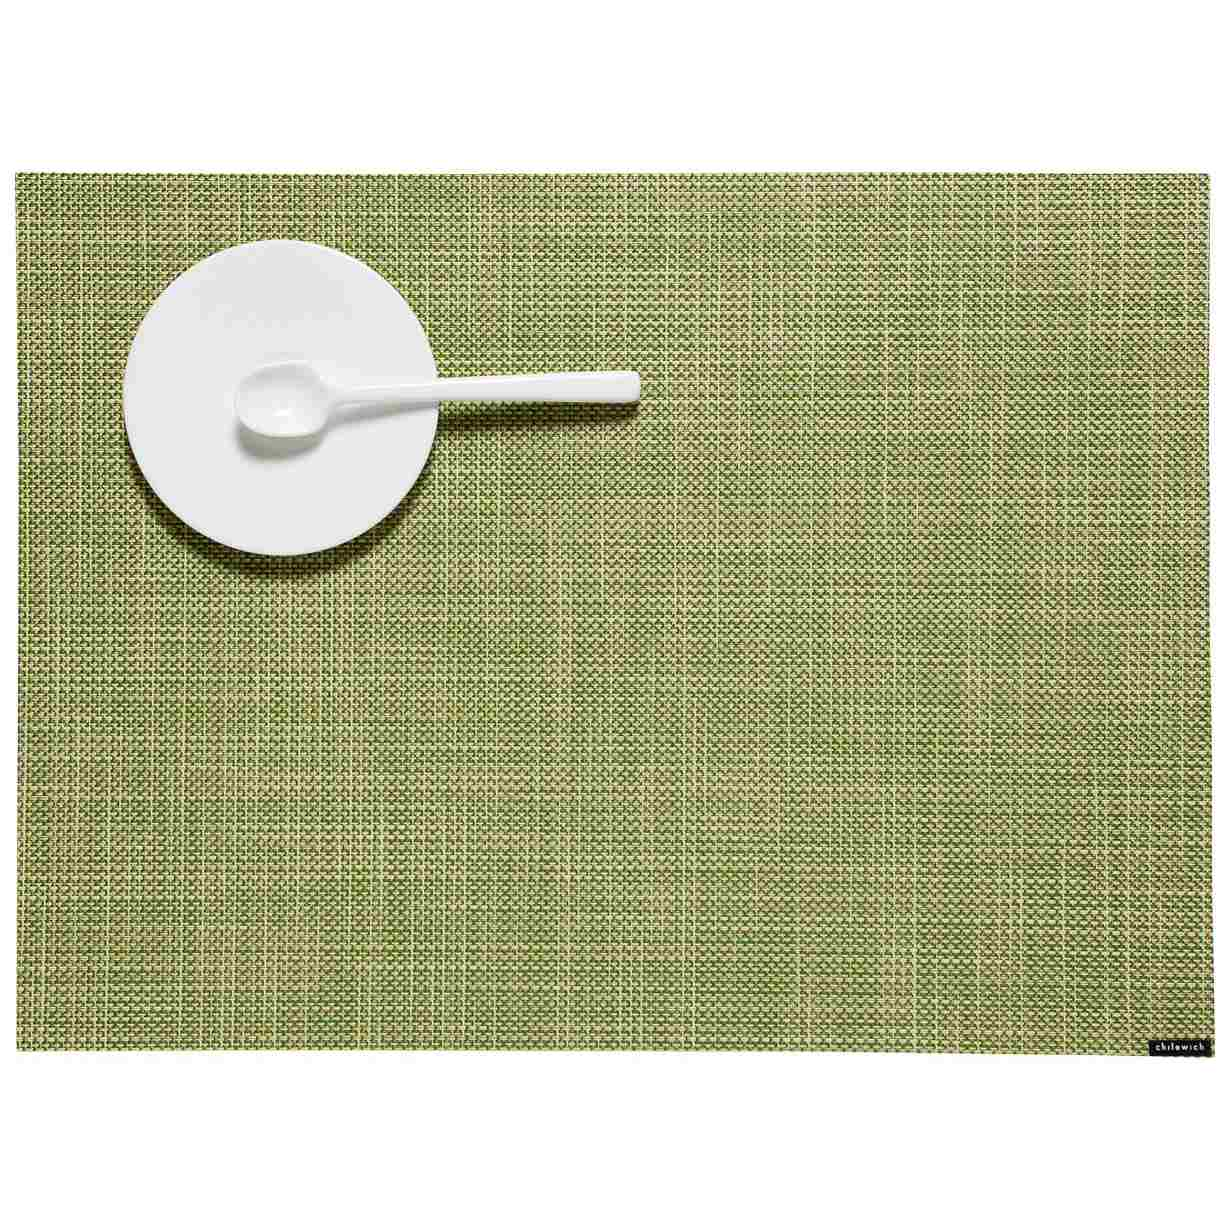 the best placemats fpx table accent placemat overall wich mini basketweave what color sage metal folding ikea small square mirrored wood coffee bathroom storage triangle end plans